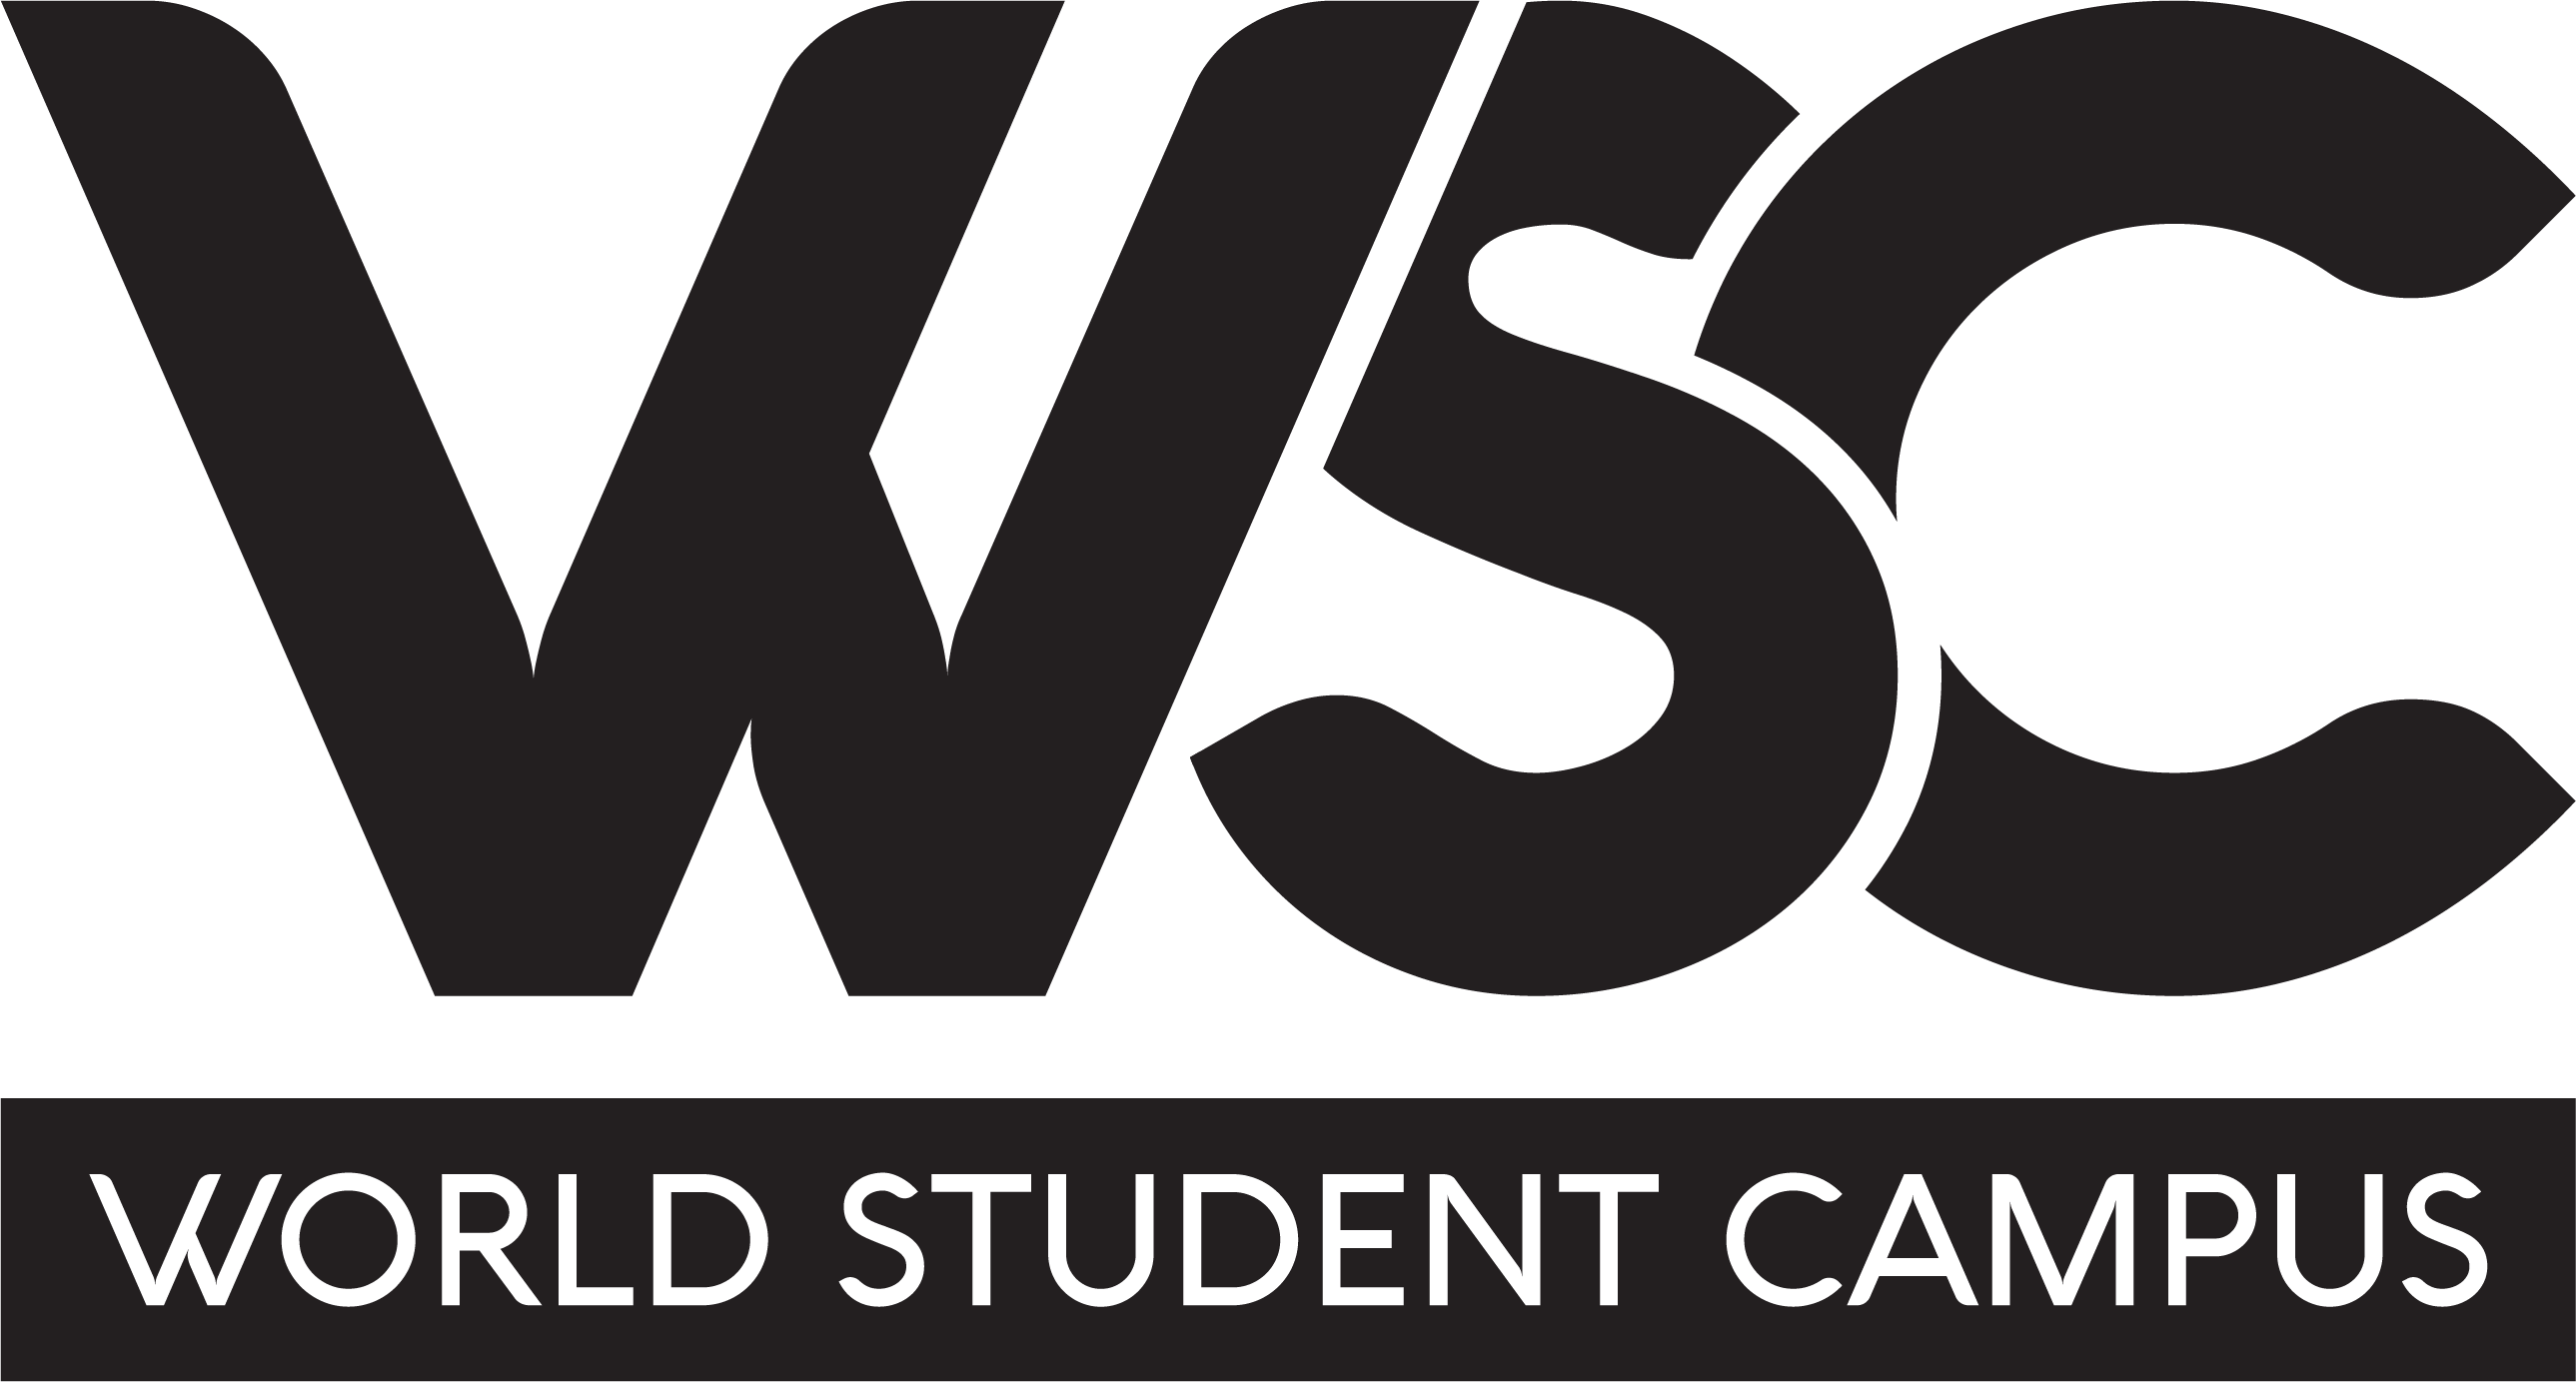 World Student Campus